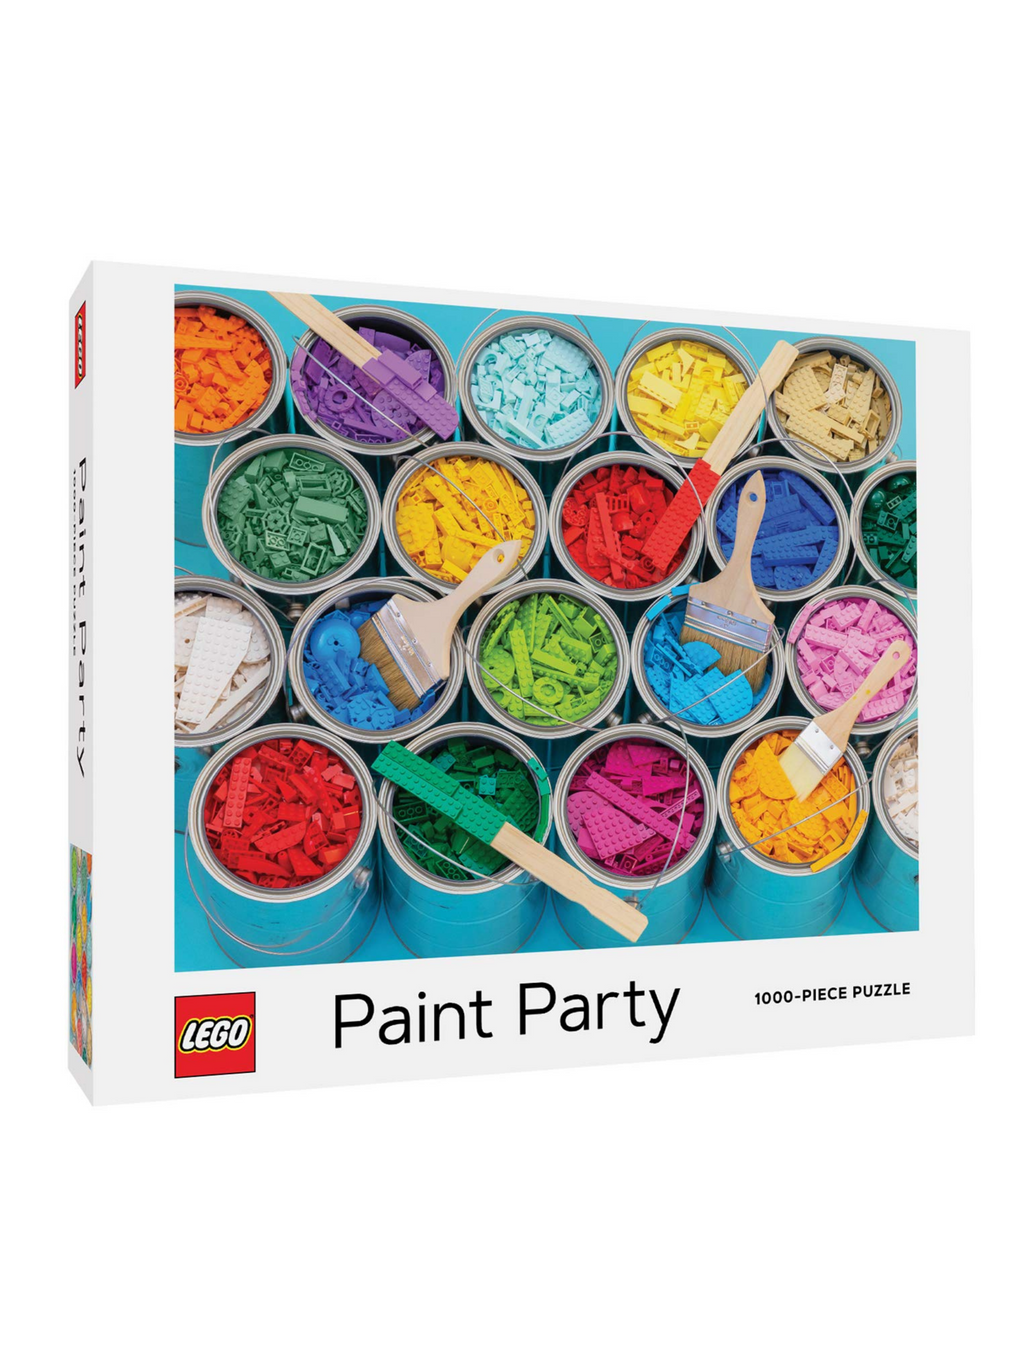 Lego Paint Puzzle - 1000pc.